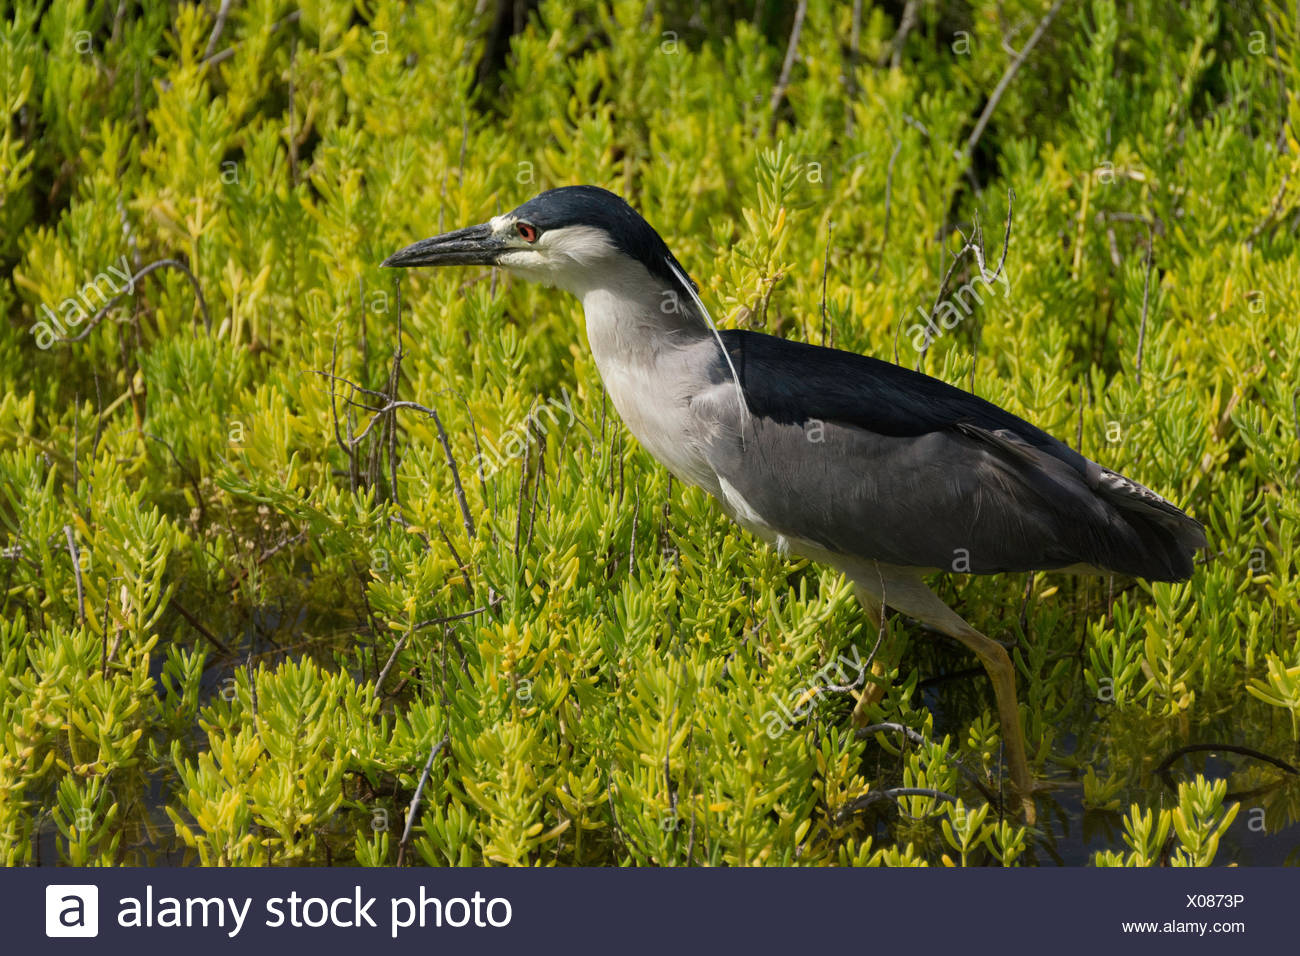 Black-crowned night heron, Nycticorax nycticorax, at Kaelia Pond National Wildlife Refuge on the island of Maui in the State of Hawaii USA - Stock Image